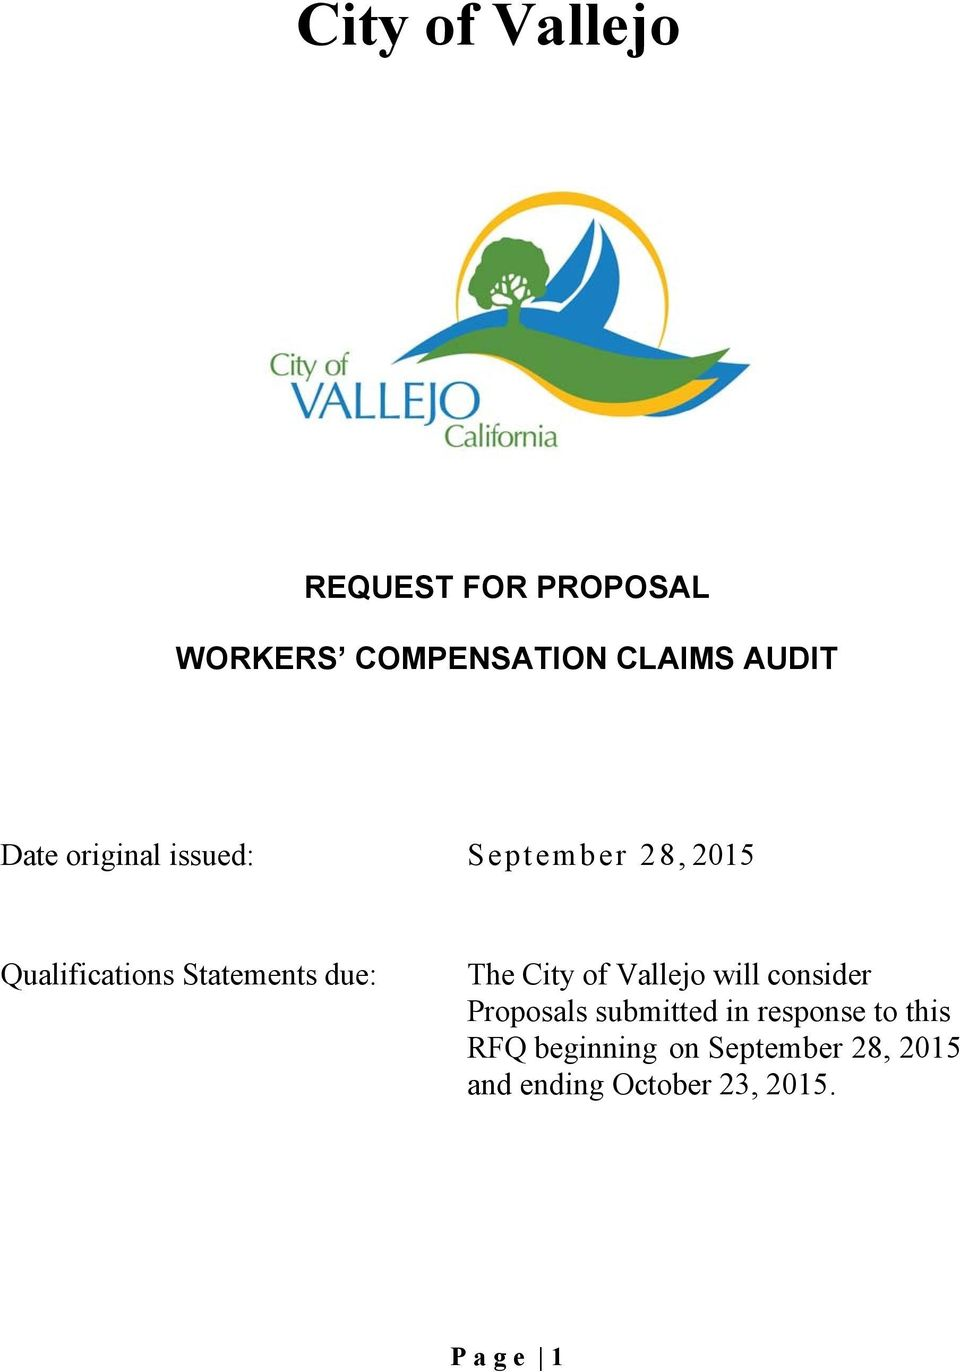 The City of Vallejo will consider Proposals submitted in response to